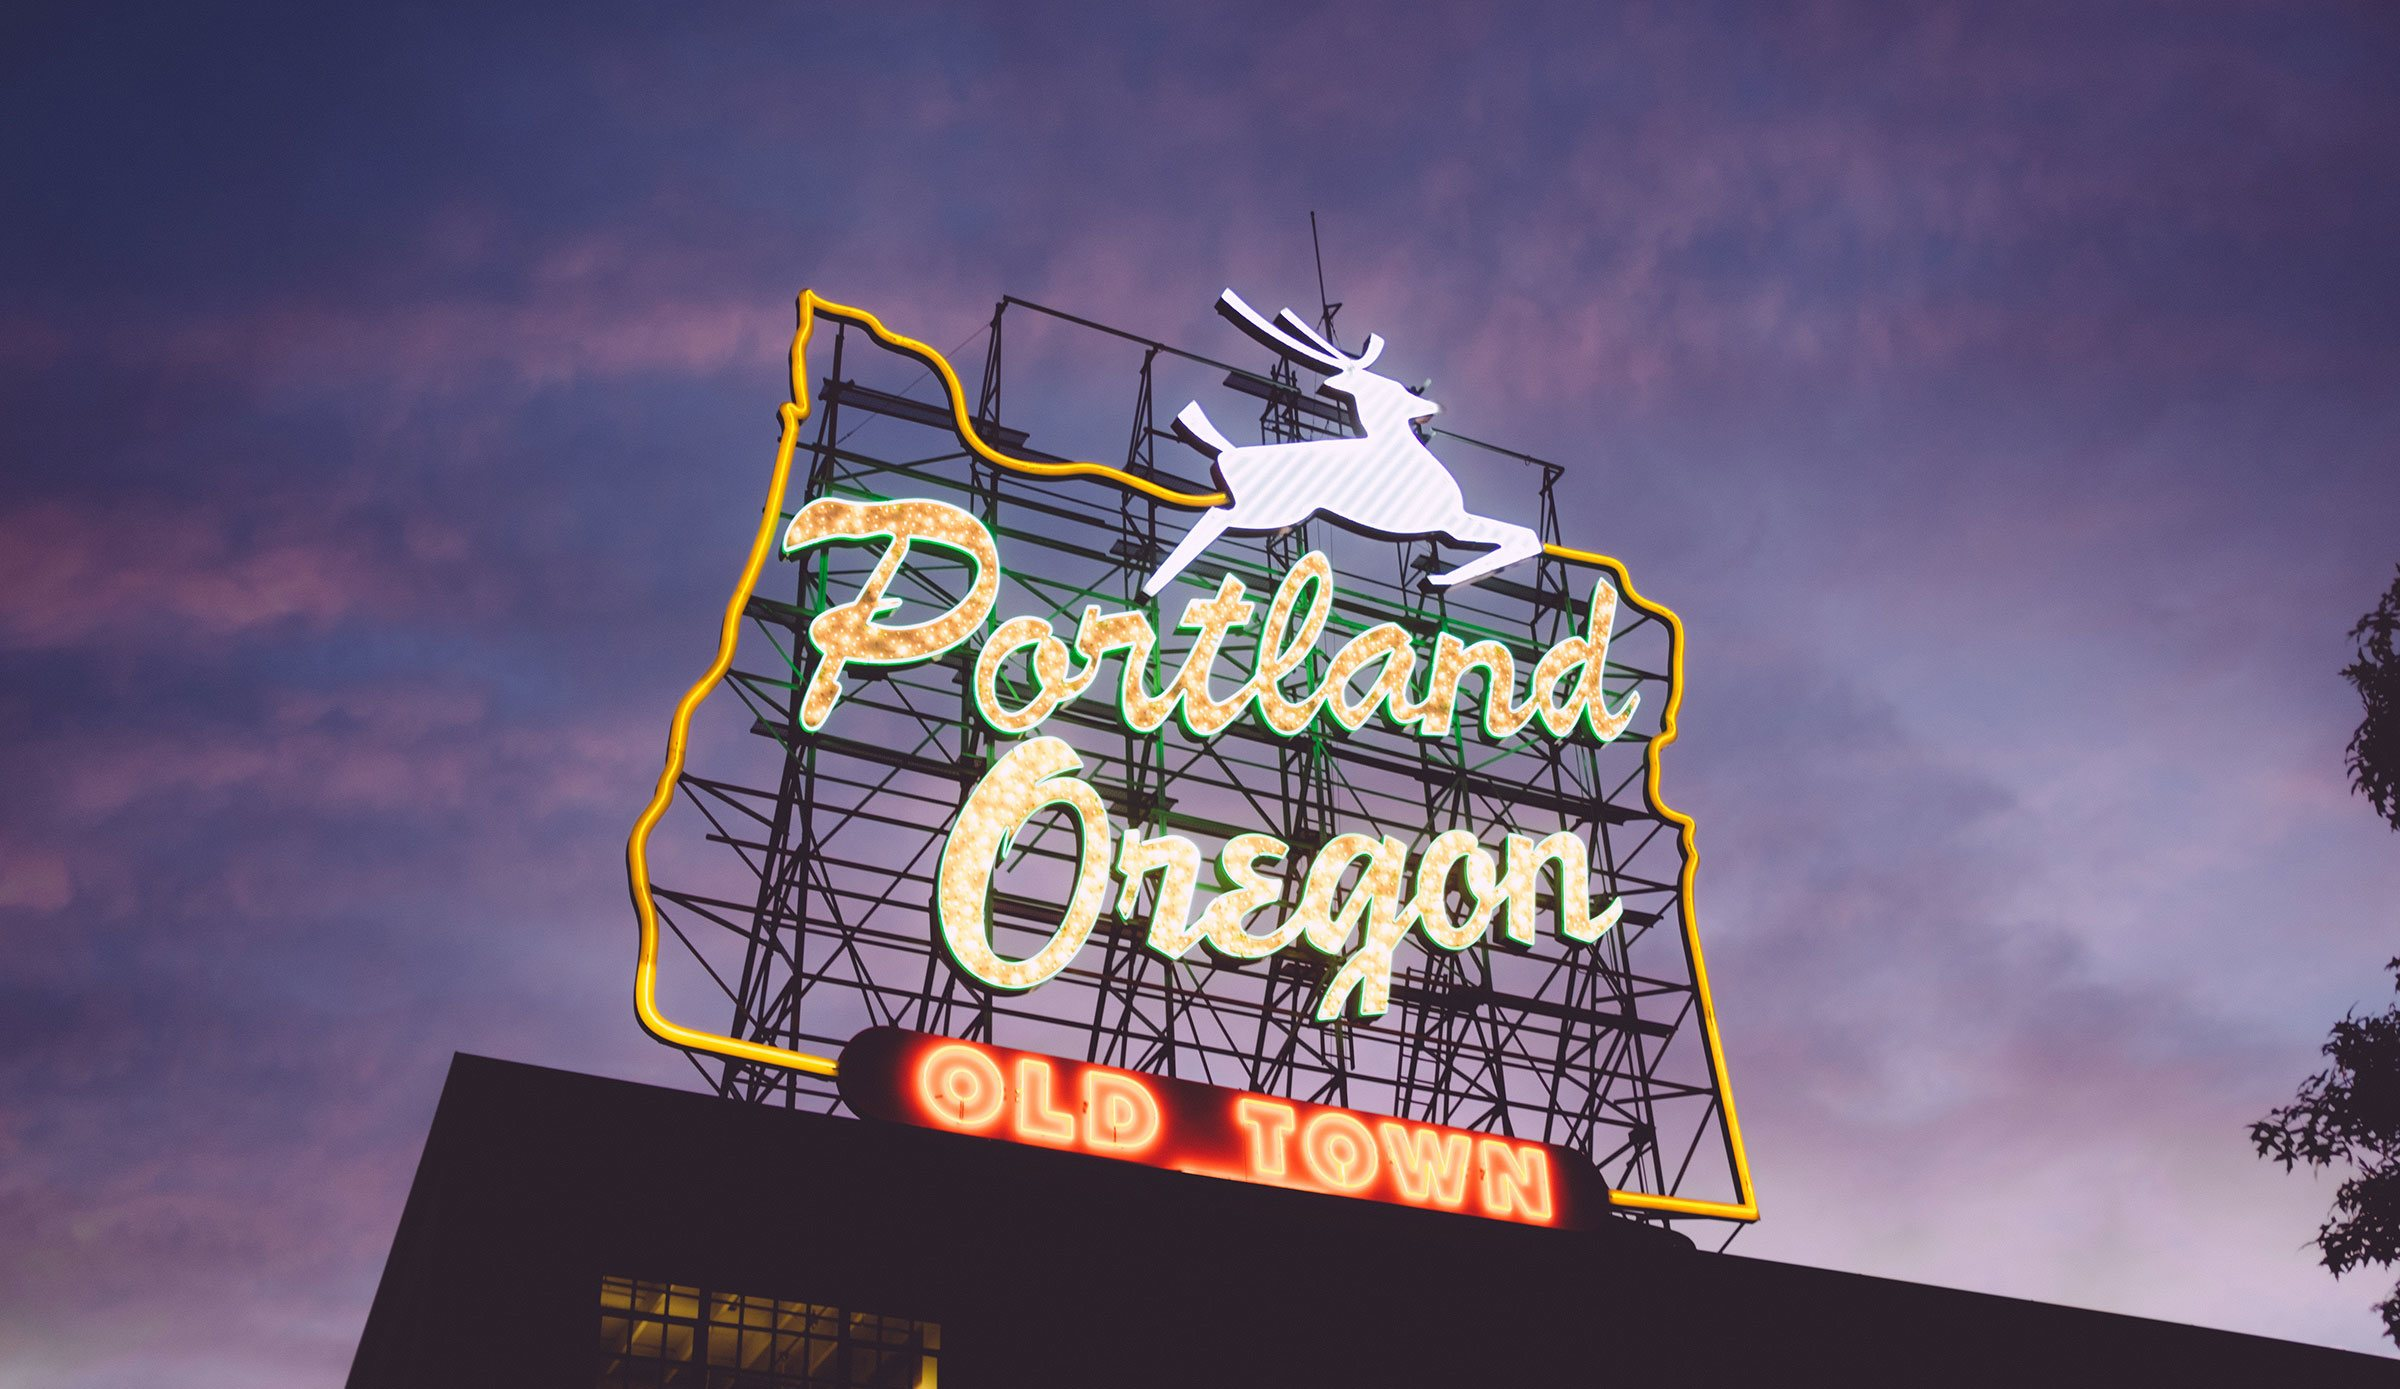 Portland, Oregon: A City That Thrives on Creative Website Design featured image